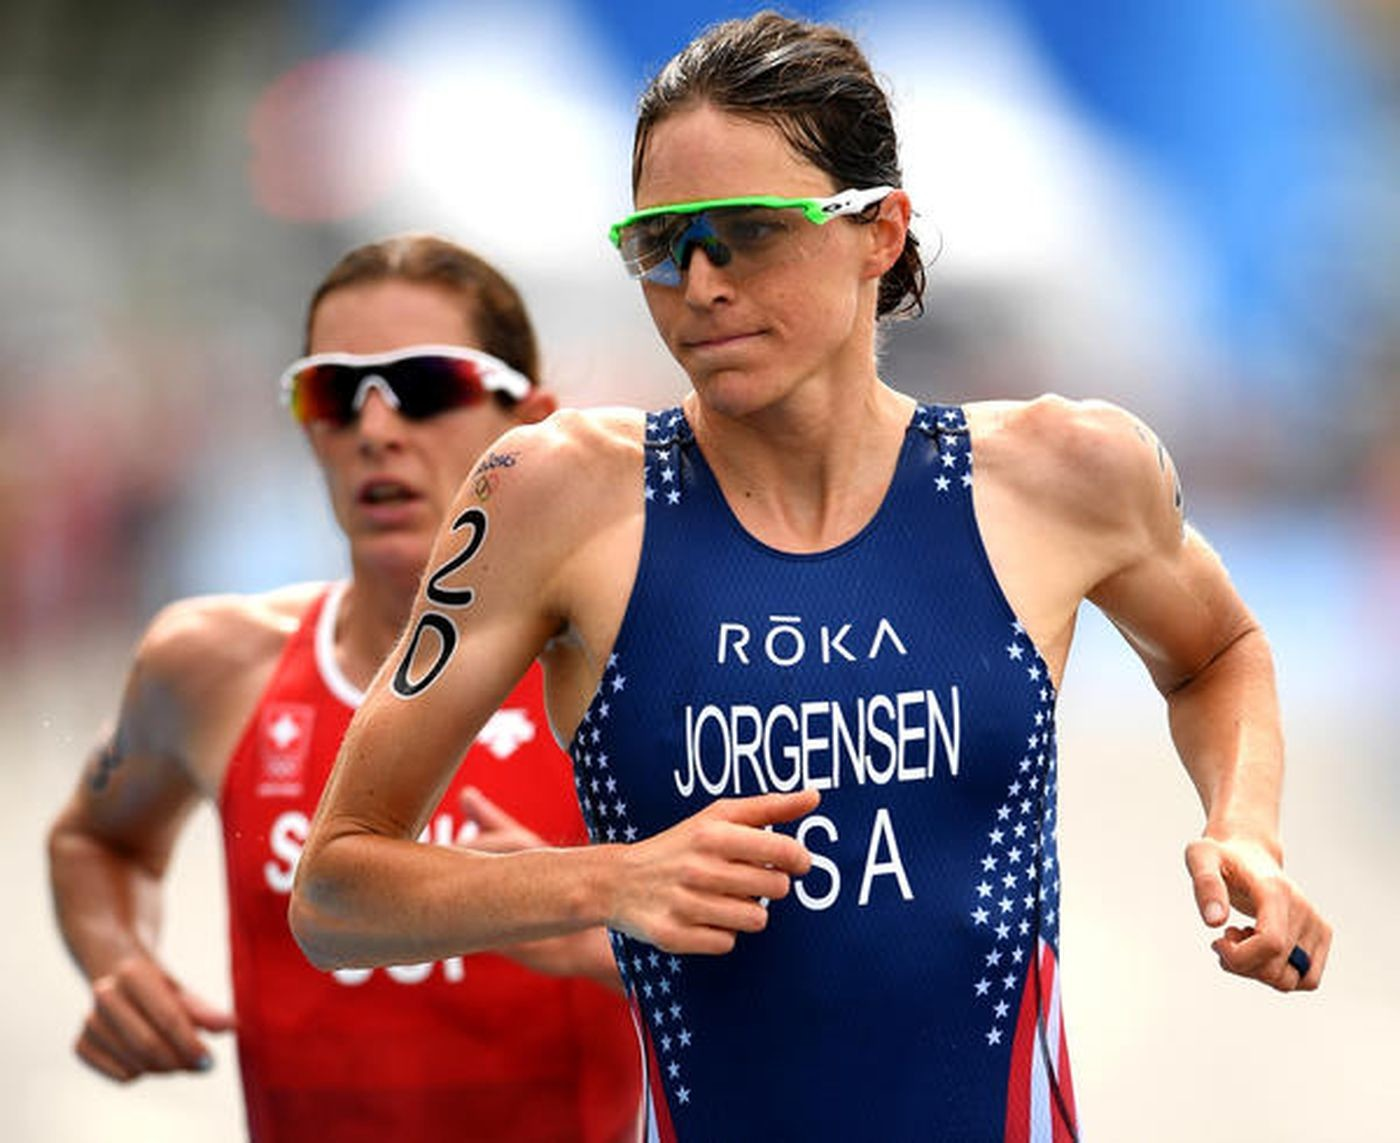 Olympic Triathlon Gold Medalist Gwen Jorgensen is making her half-marathon debut May 6